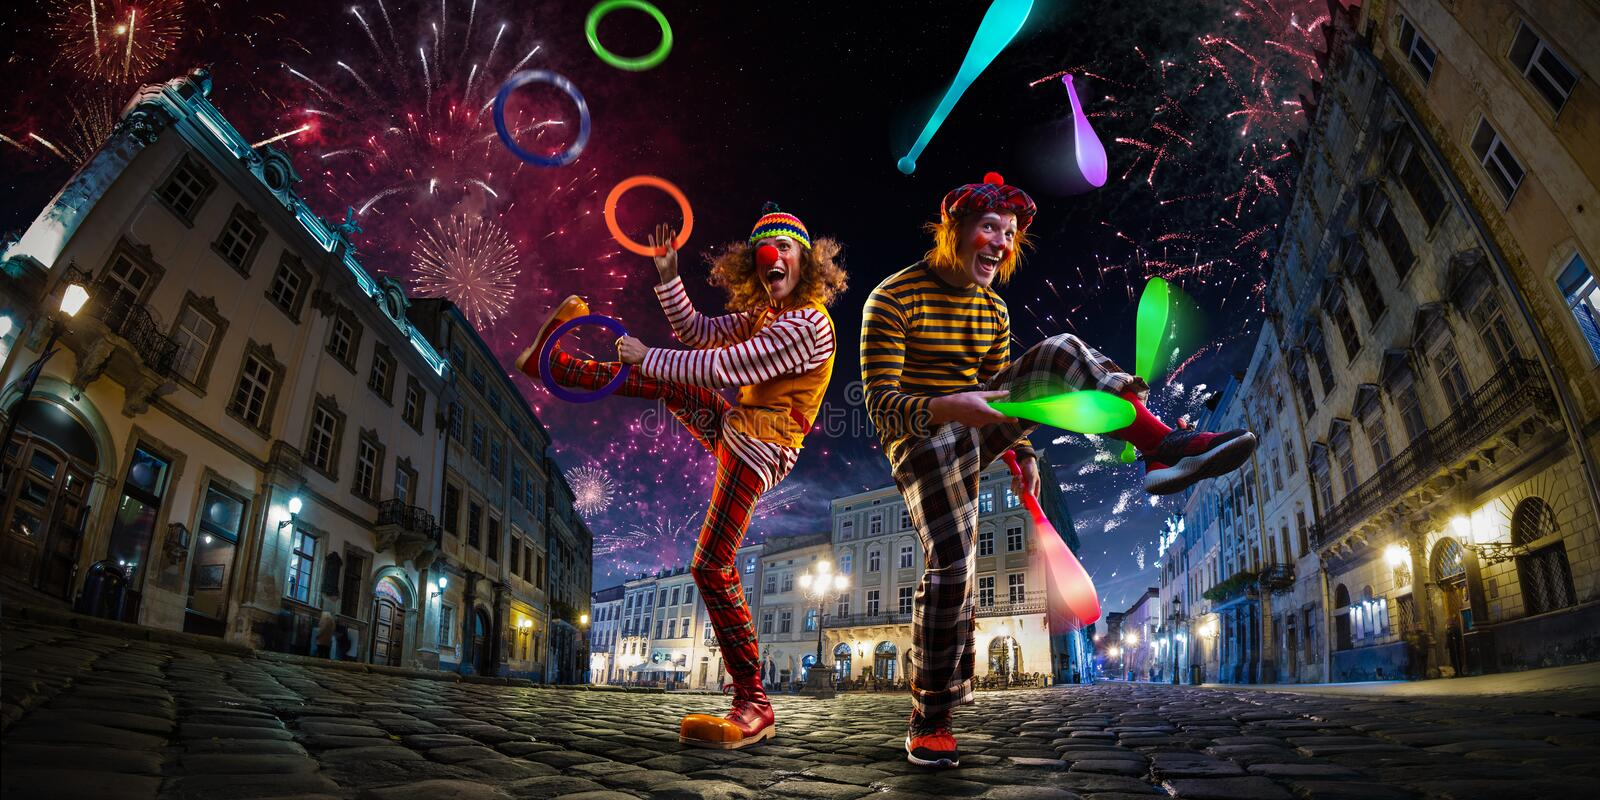 Night street circus performance whit two clowns, jugglerFestival city background. fireworks and Celebration atmosphere.Wide engle stock photography